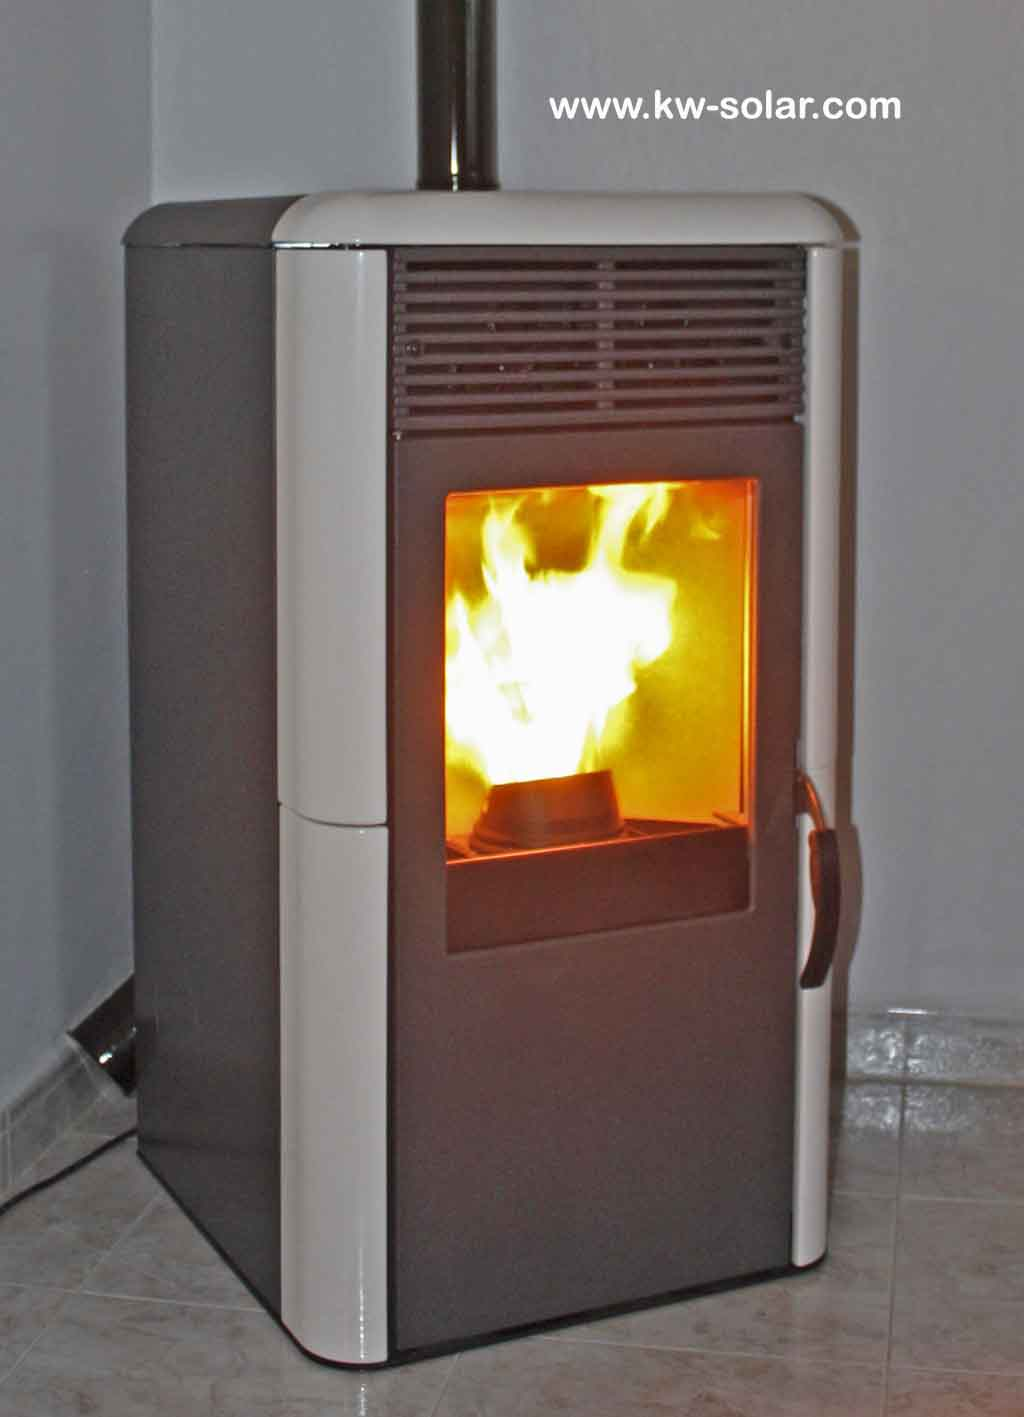 Pellet stove Point Edilkamin 8 kW